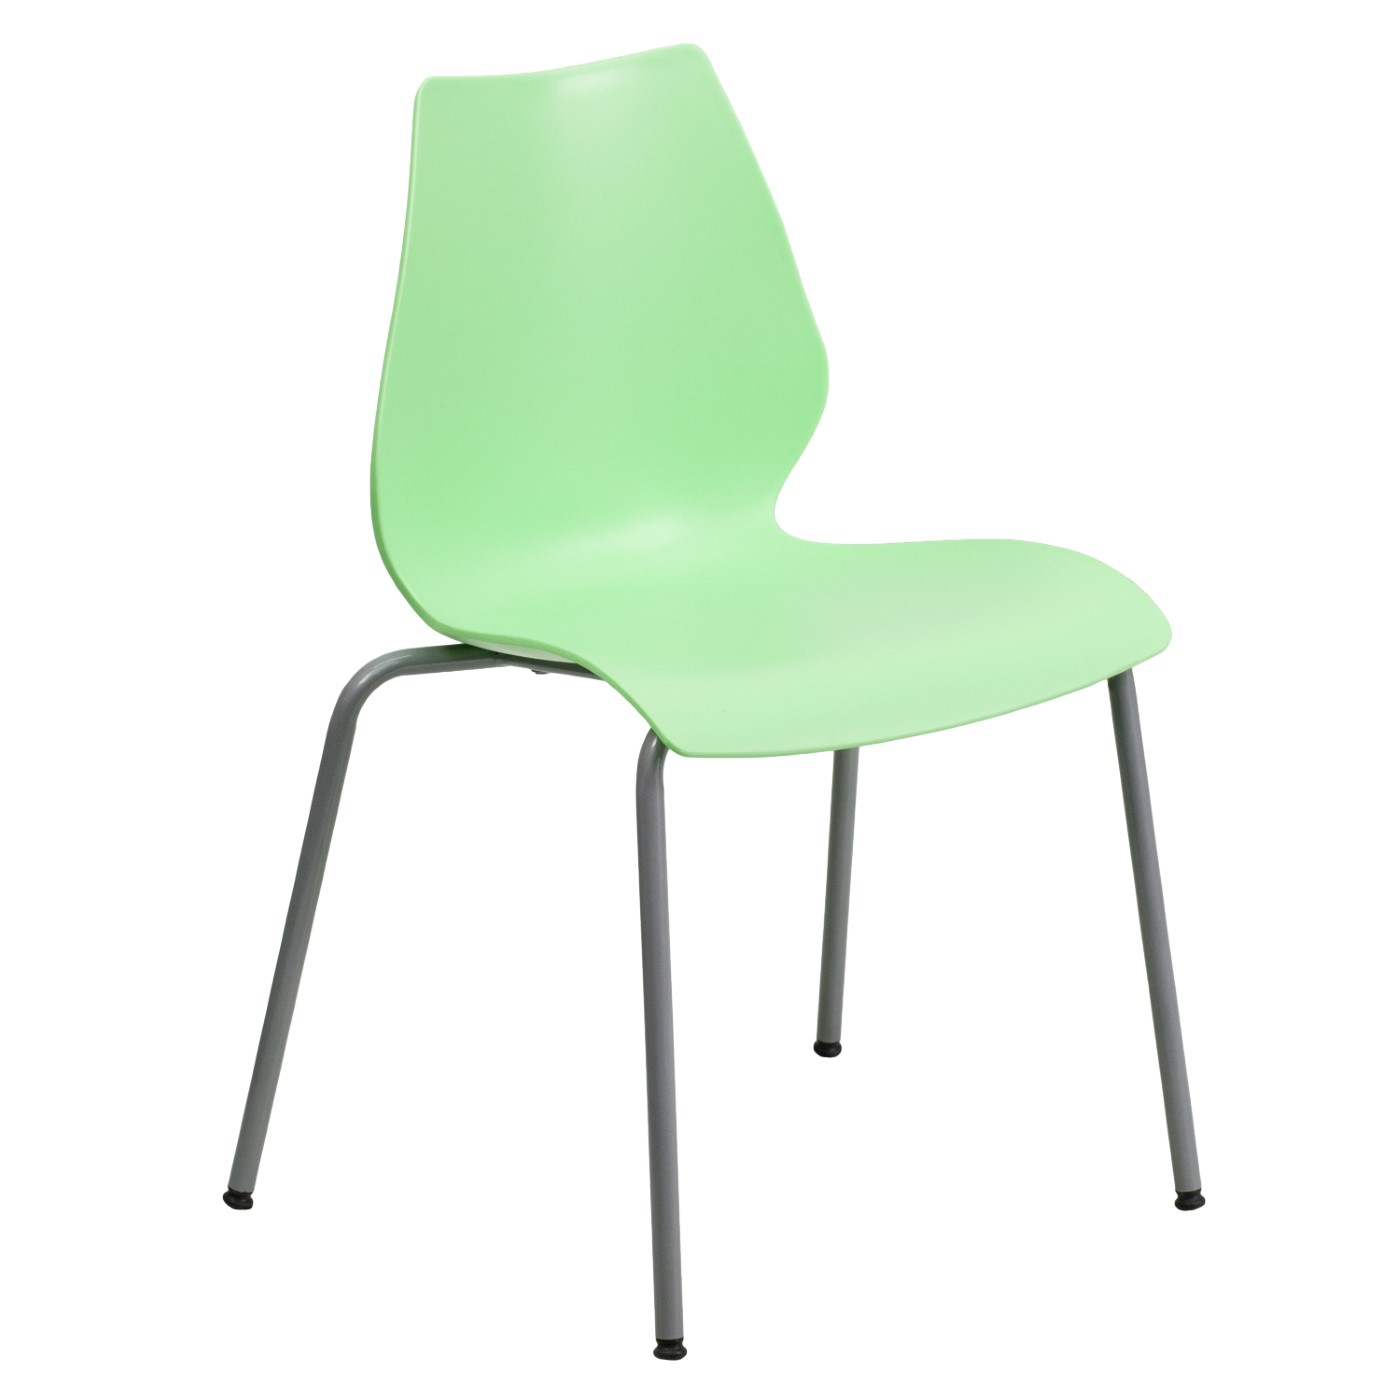 TOUGH ENOUGH Series 770 lb. Capacity Green Stack Chair with Lumbar Support and Silver Frame